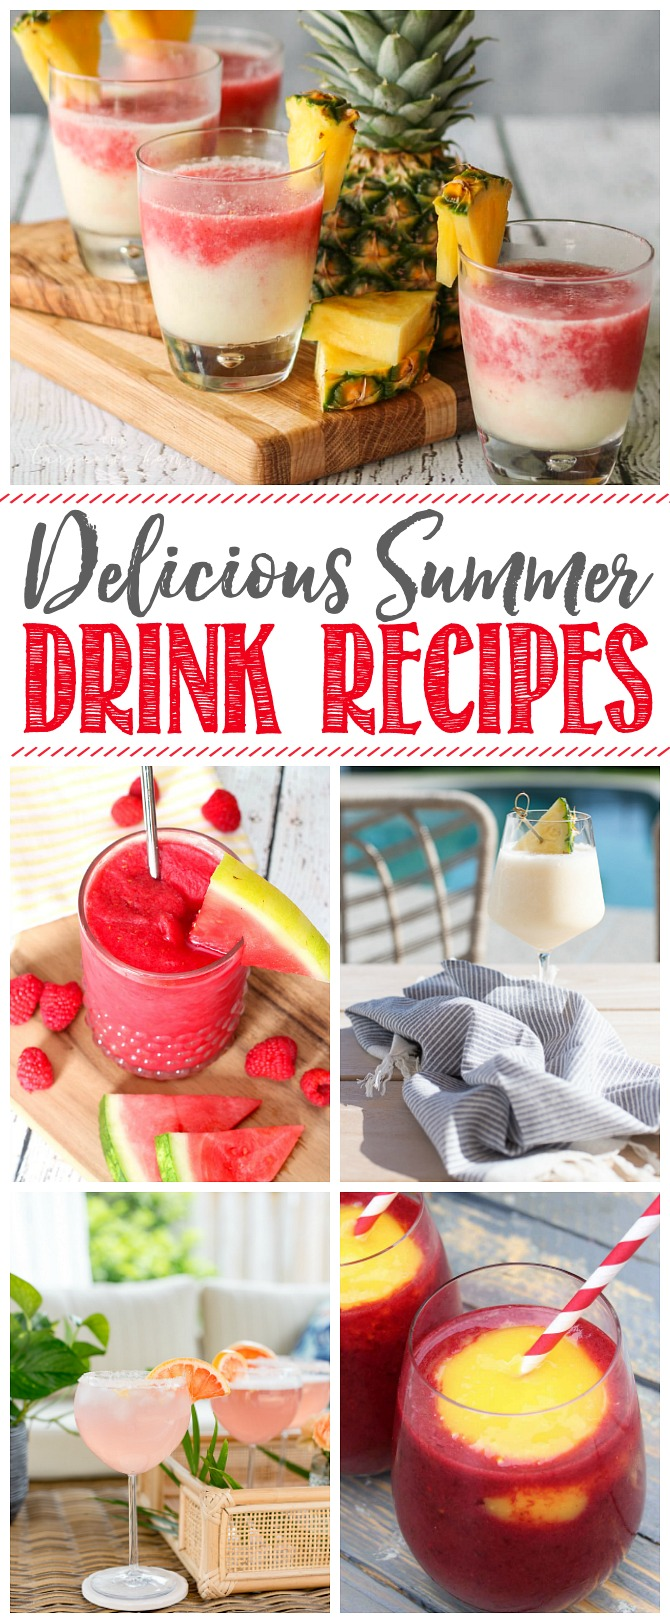 Collage of delicious summer drink recipes.